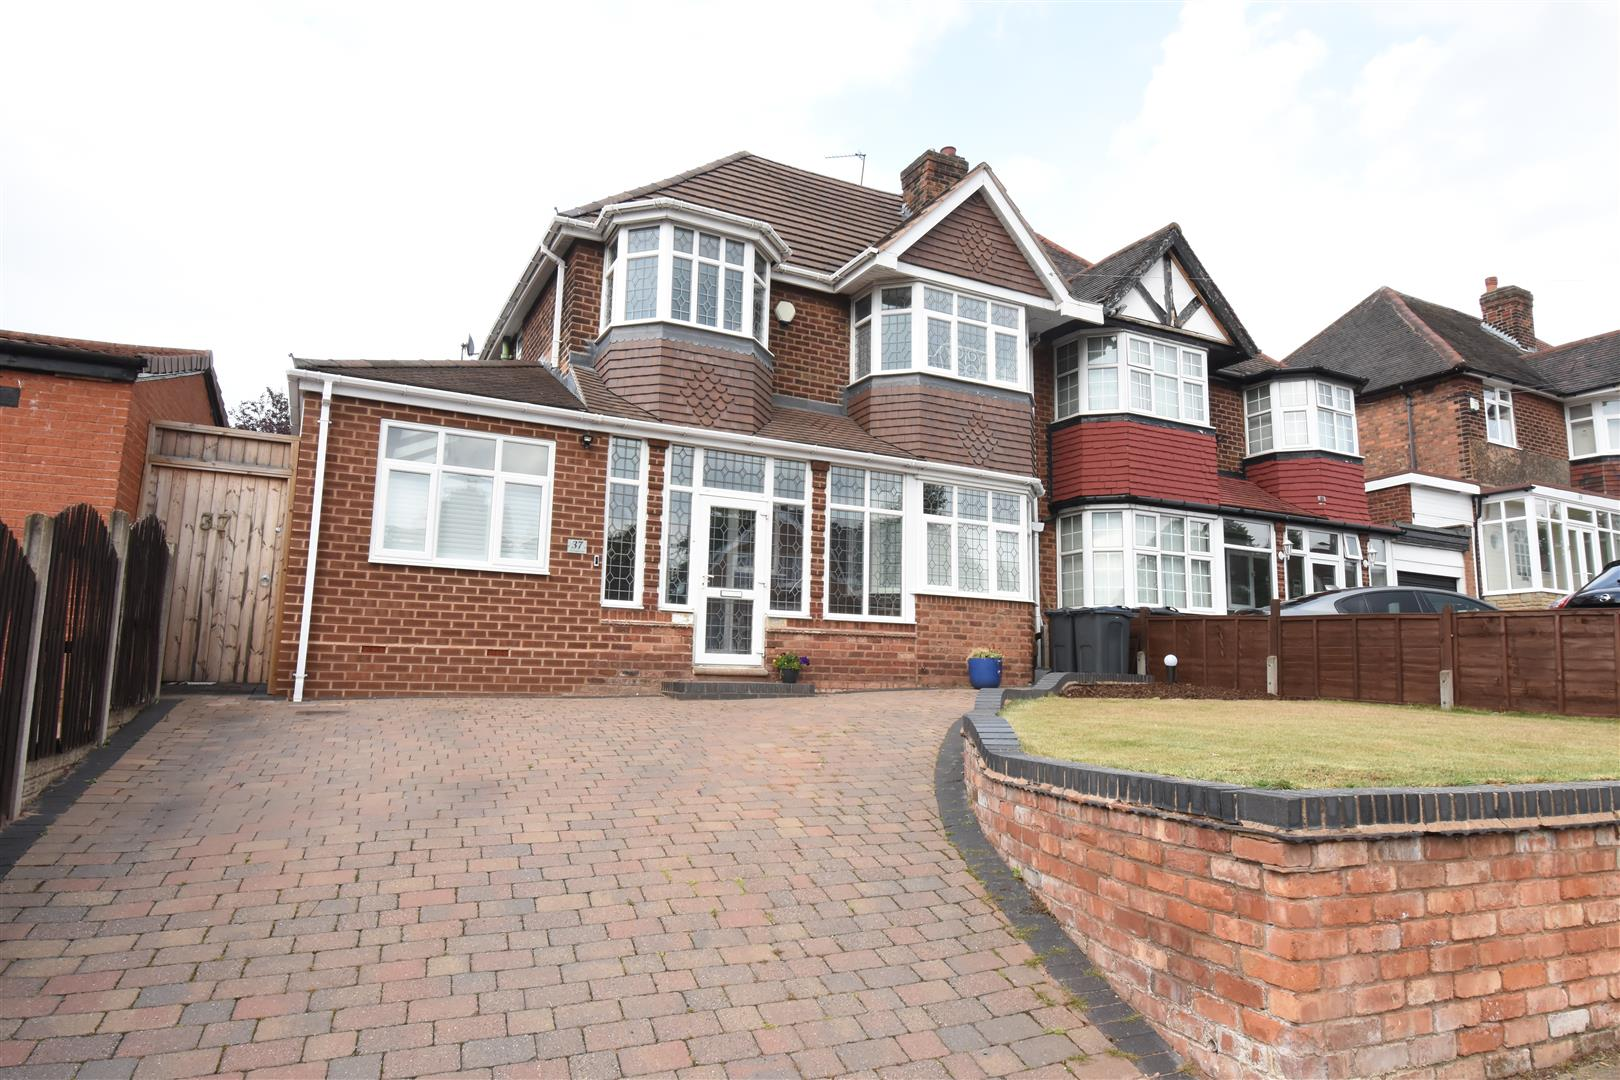 3 bed house for sale in Old Bromford Lane, Hodge Hill, Birmingham, B8